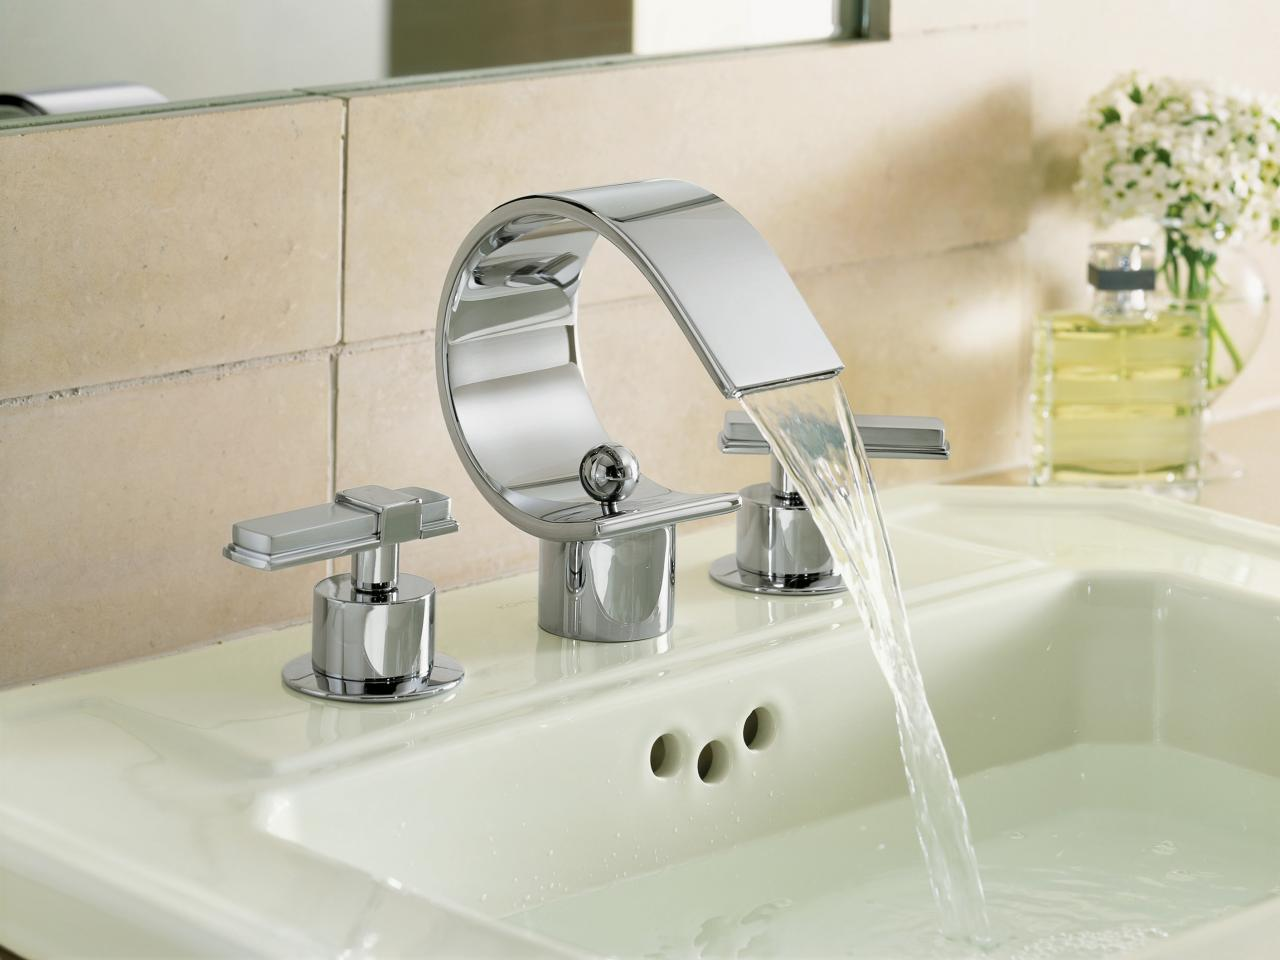 Simply Modern Bathroom Faucets You Should Get - MidCityEast